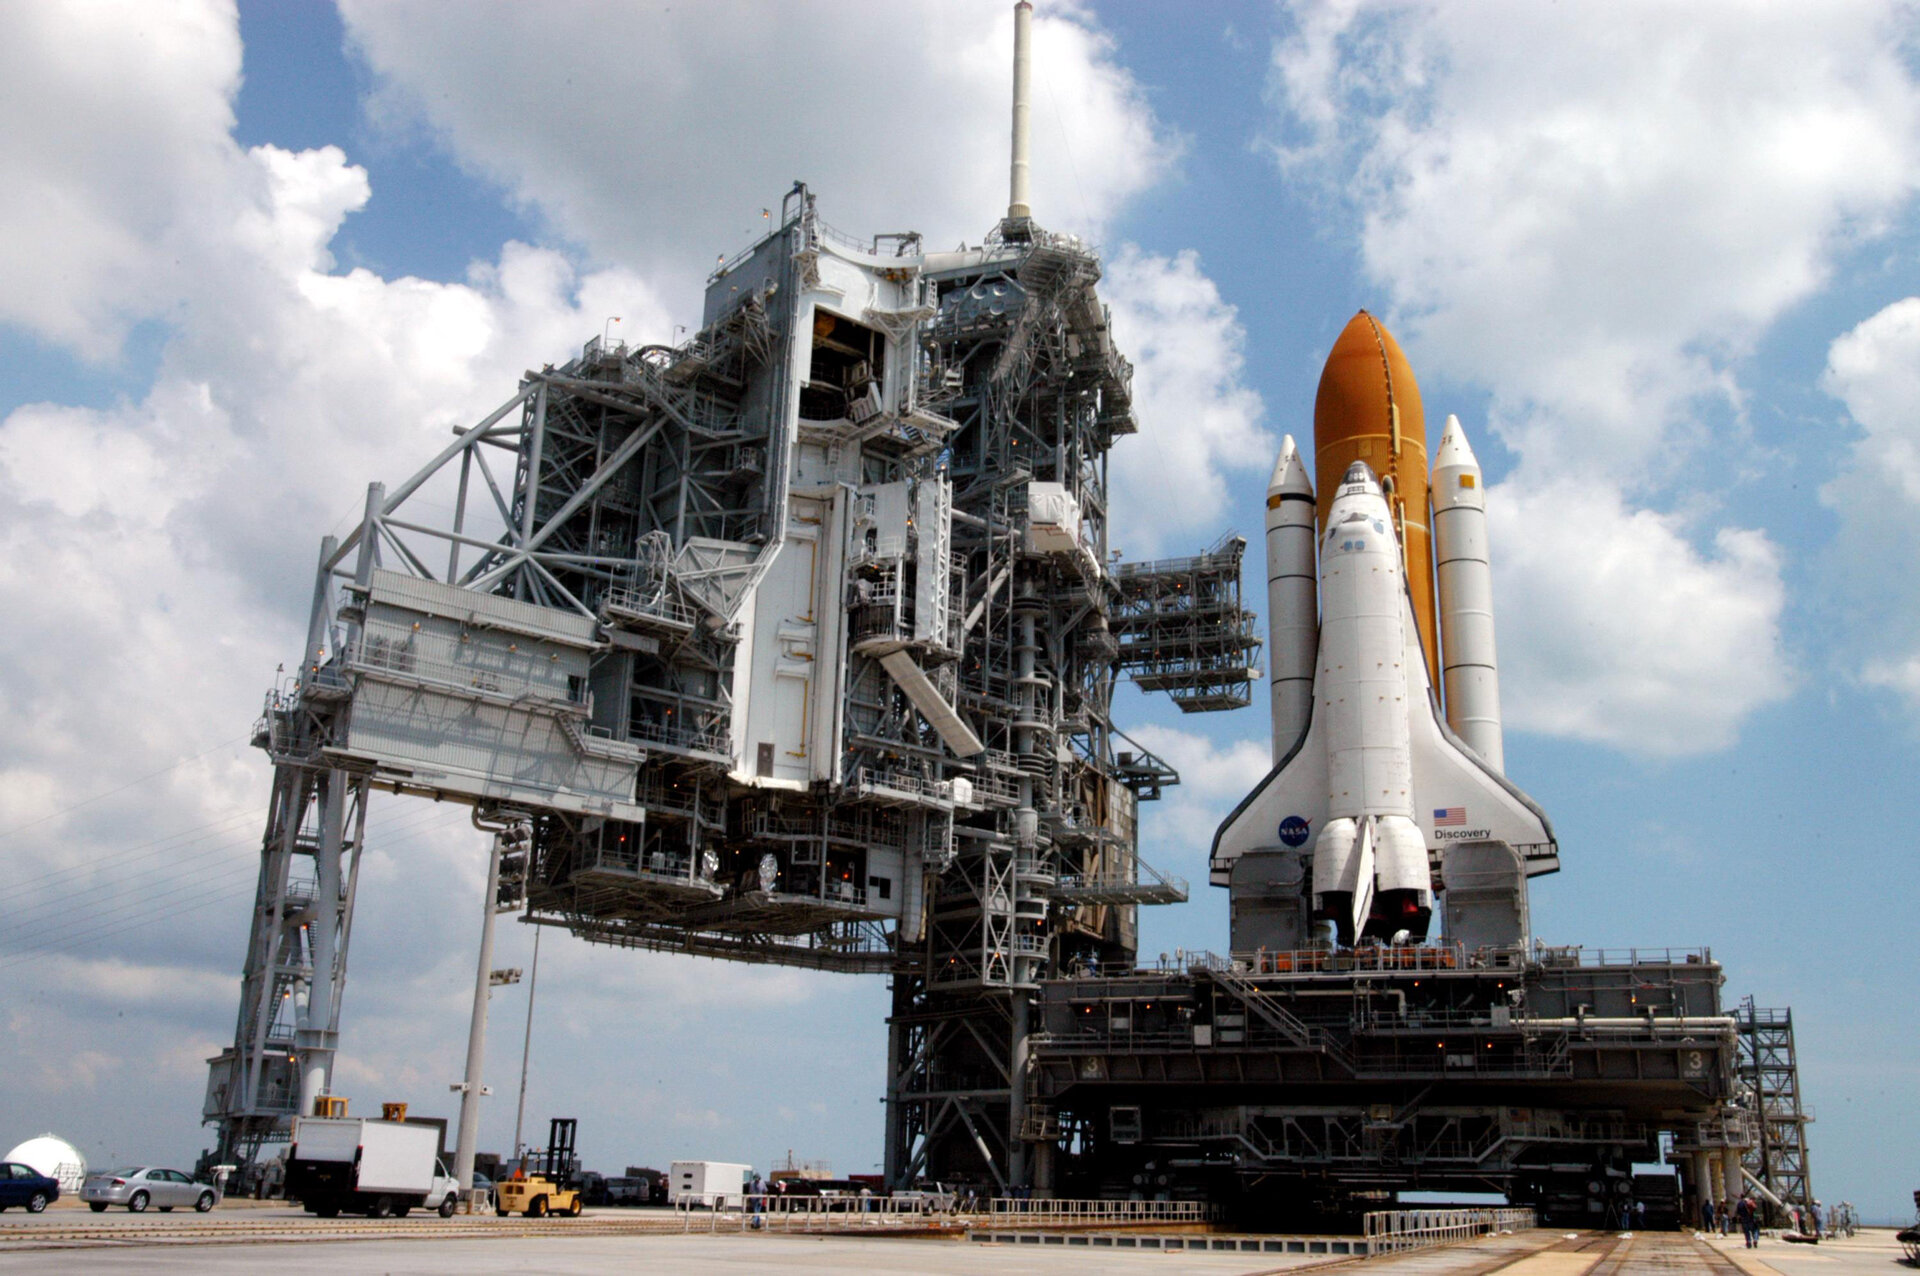 Space Shuttle Discovery is due to lift off from KSC at 21:49 CEST on 1 July 2006